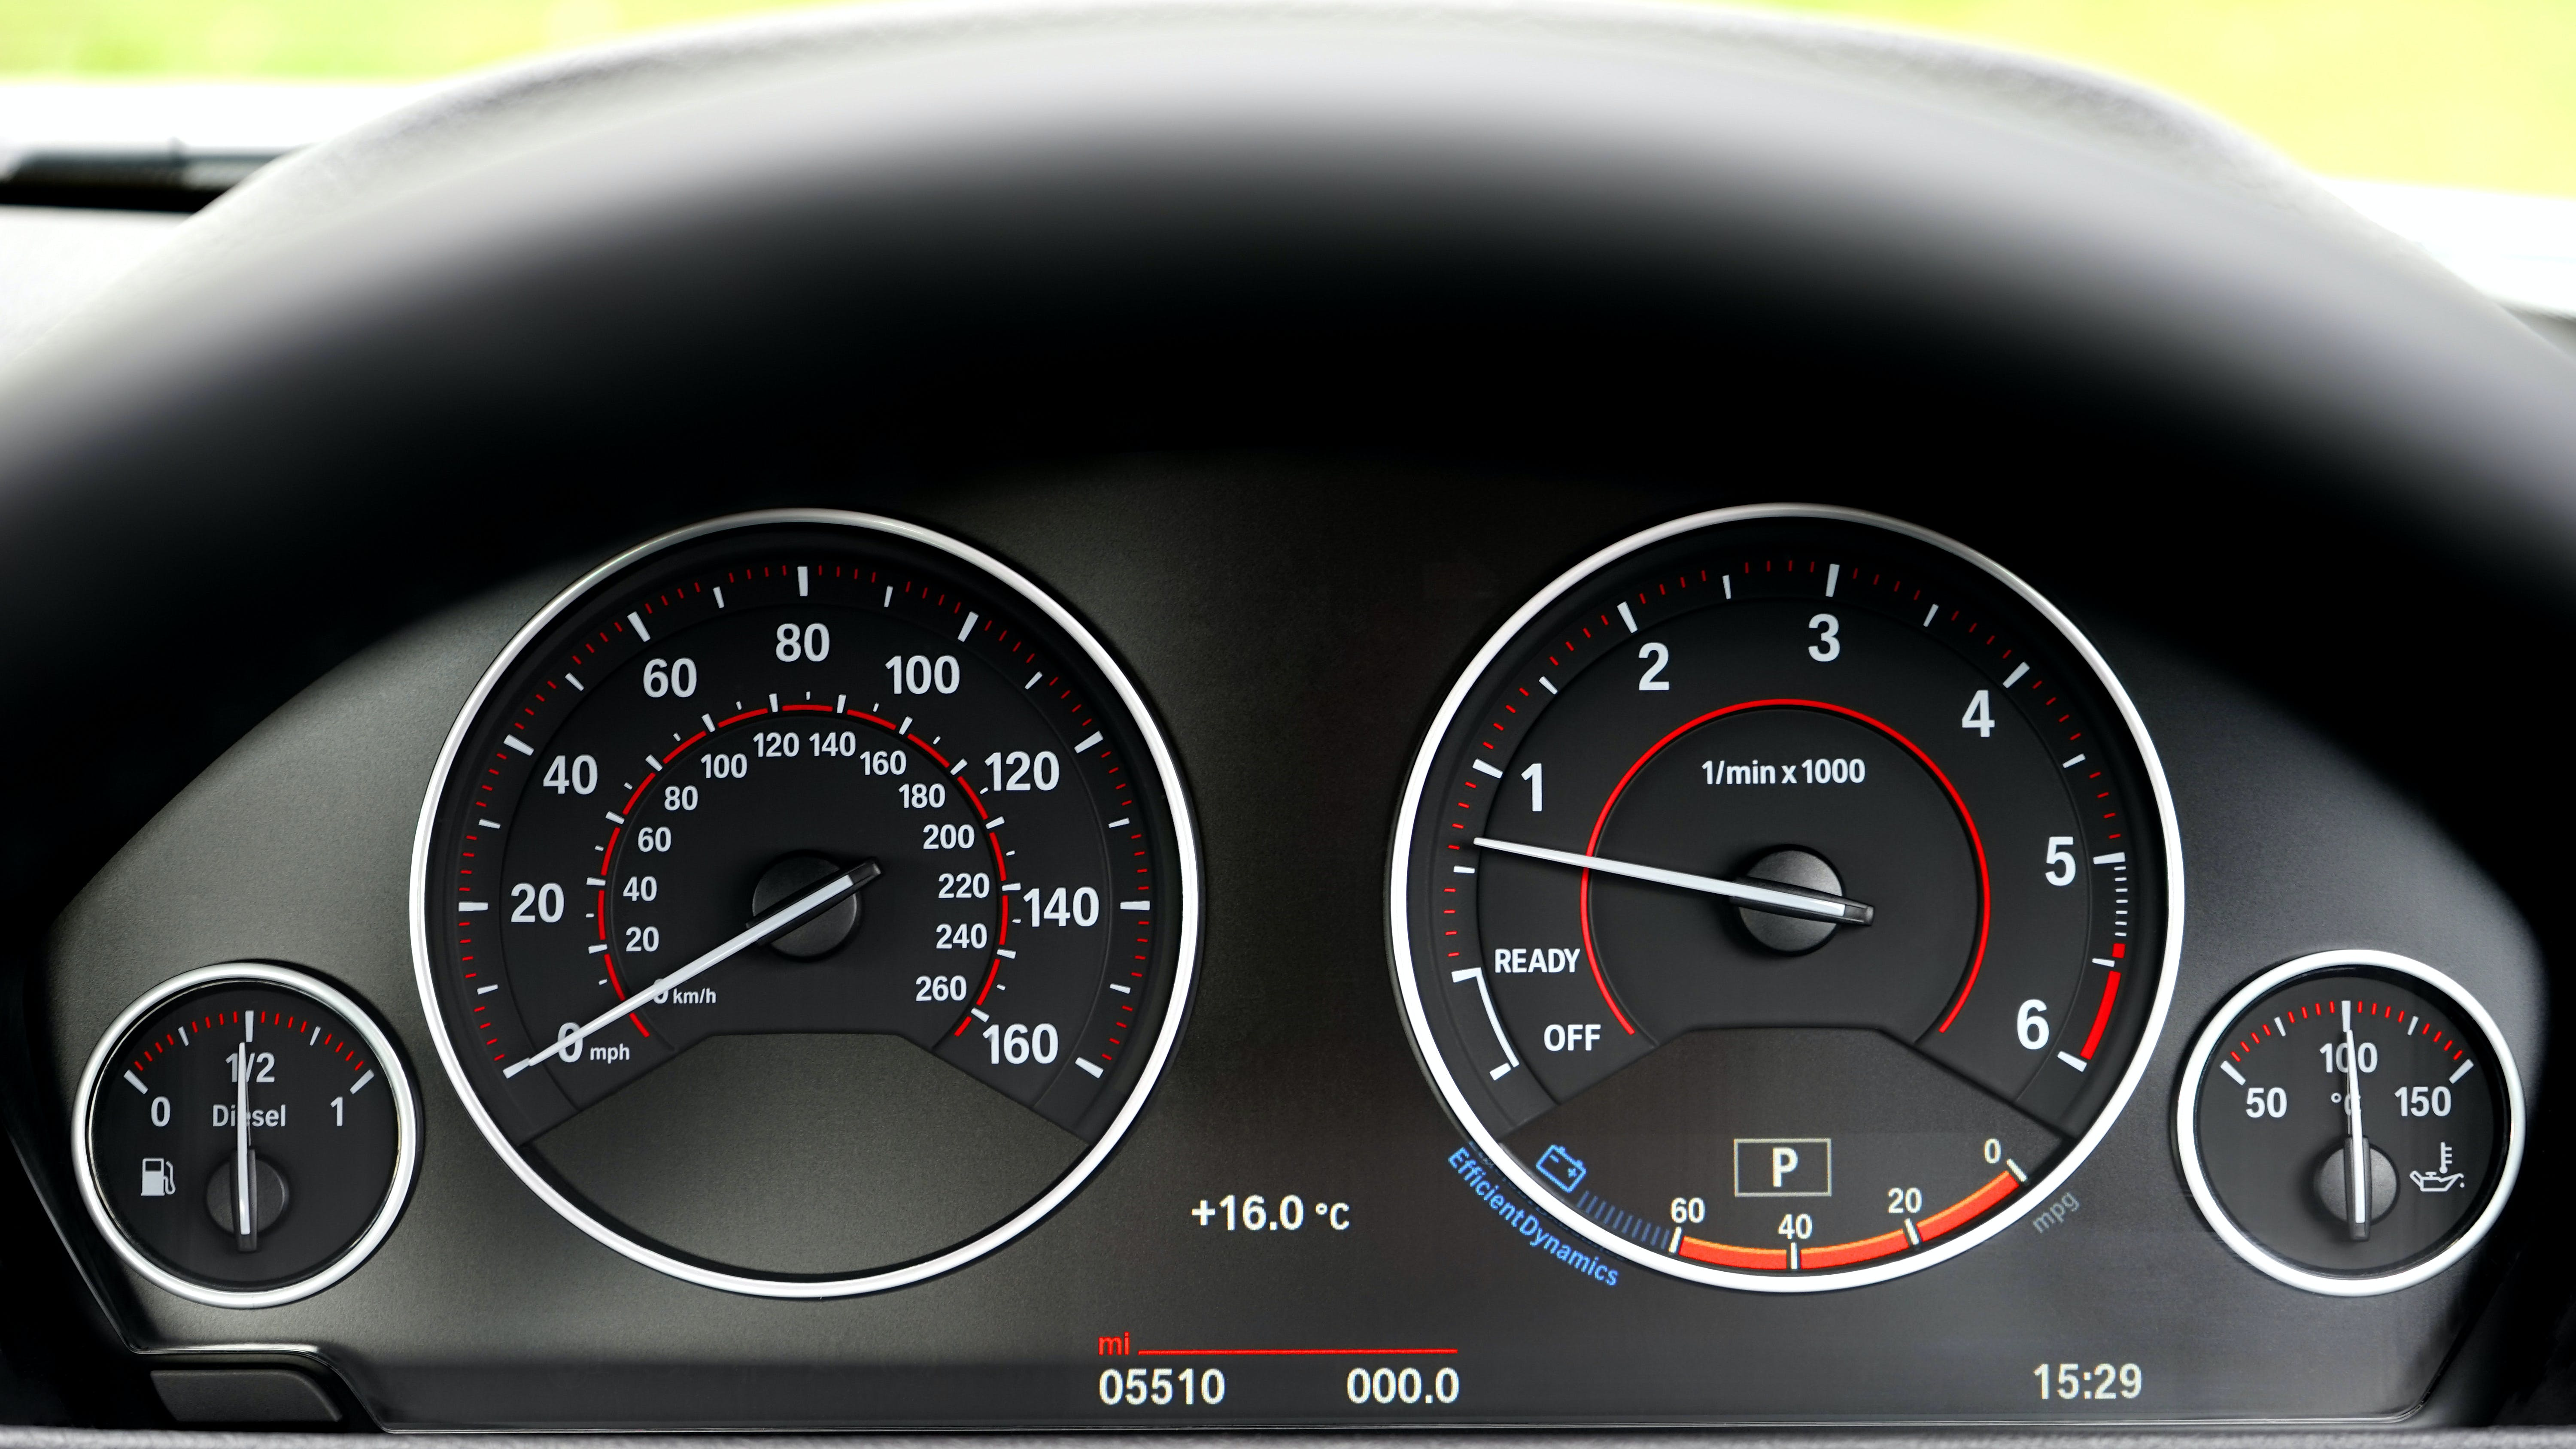 Free stock photo of tachometer, close-up, dashboard, speedometer